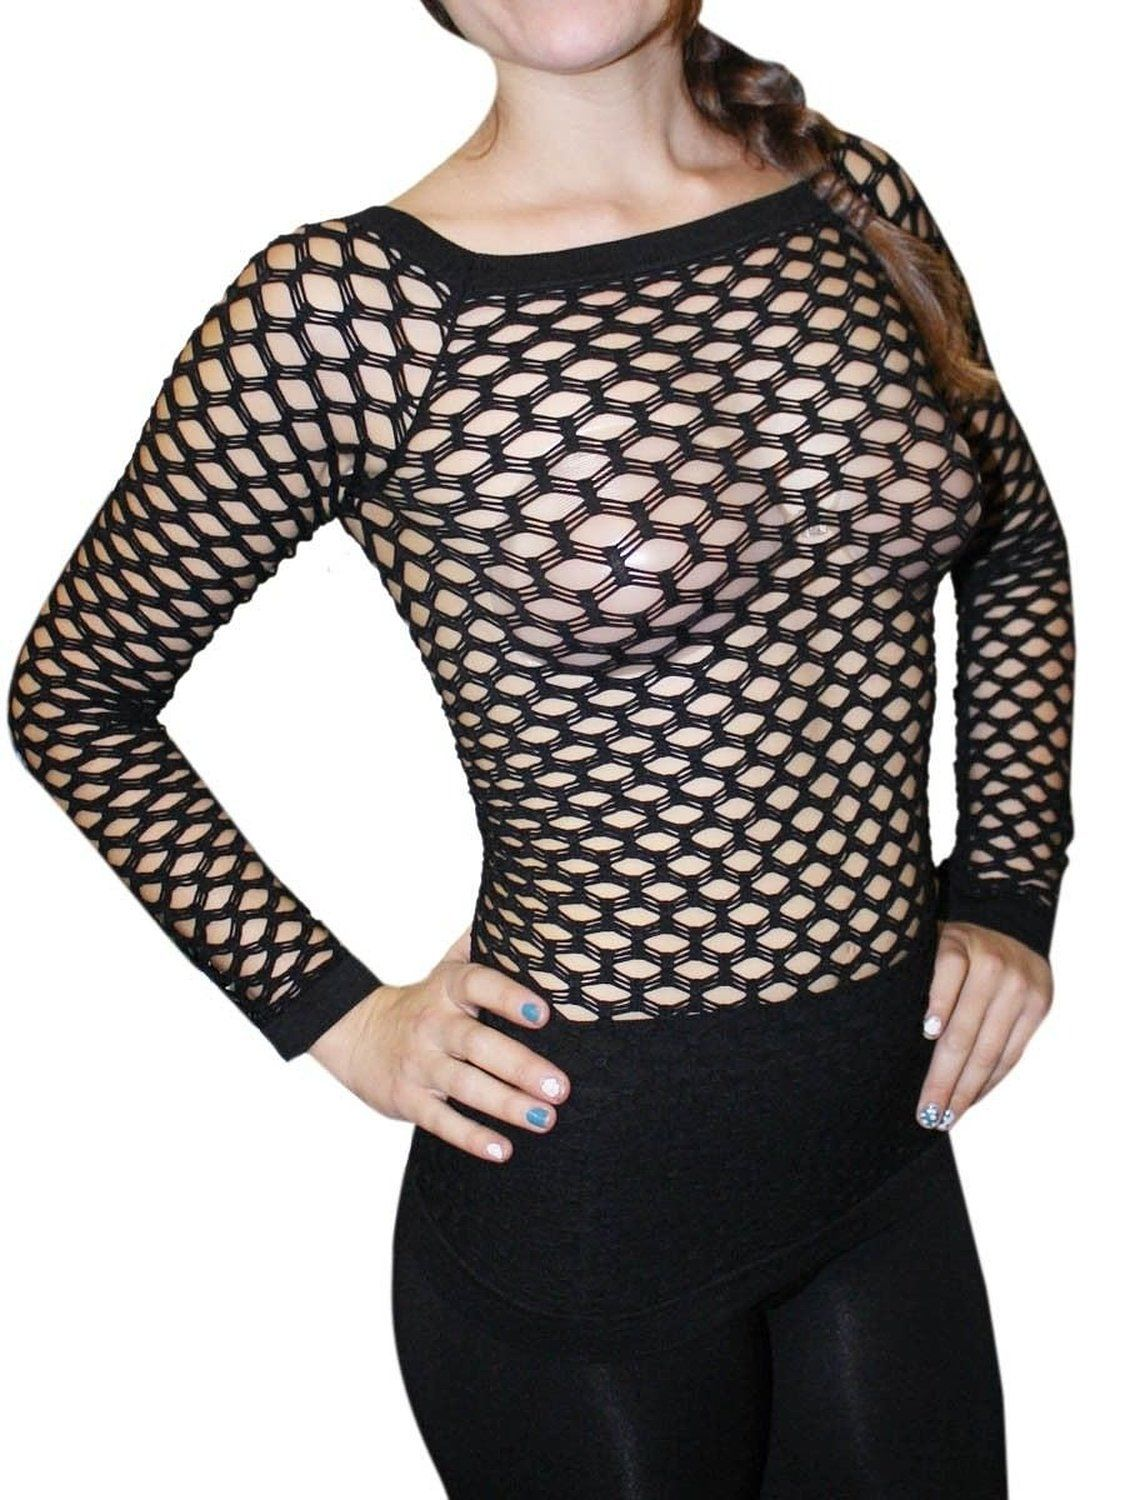 52f497c5fea Amazon.com  New Sexy Long Sleeve Fishnet Shirt Top Bathing Suit Cover Up-Black   Clothing